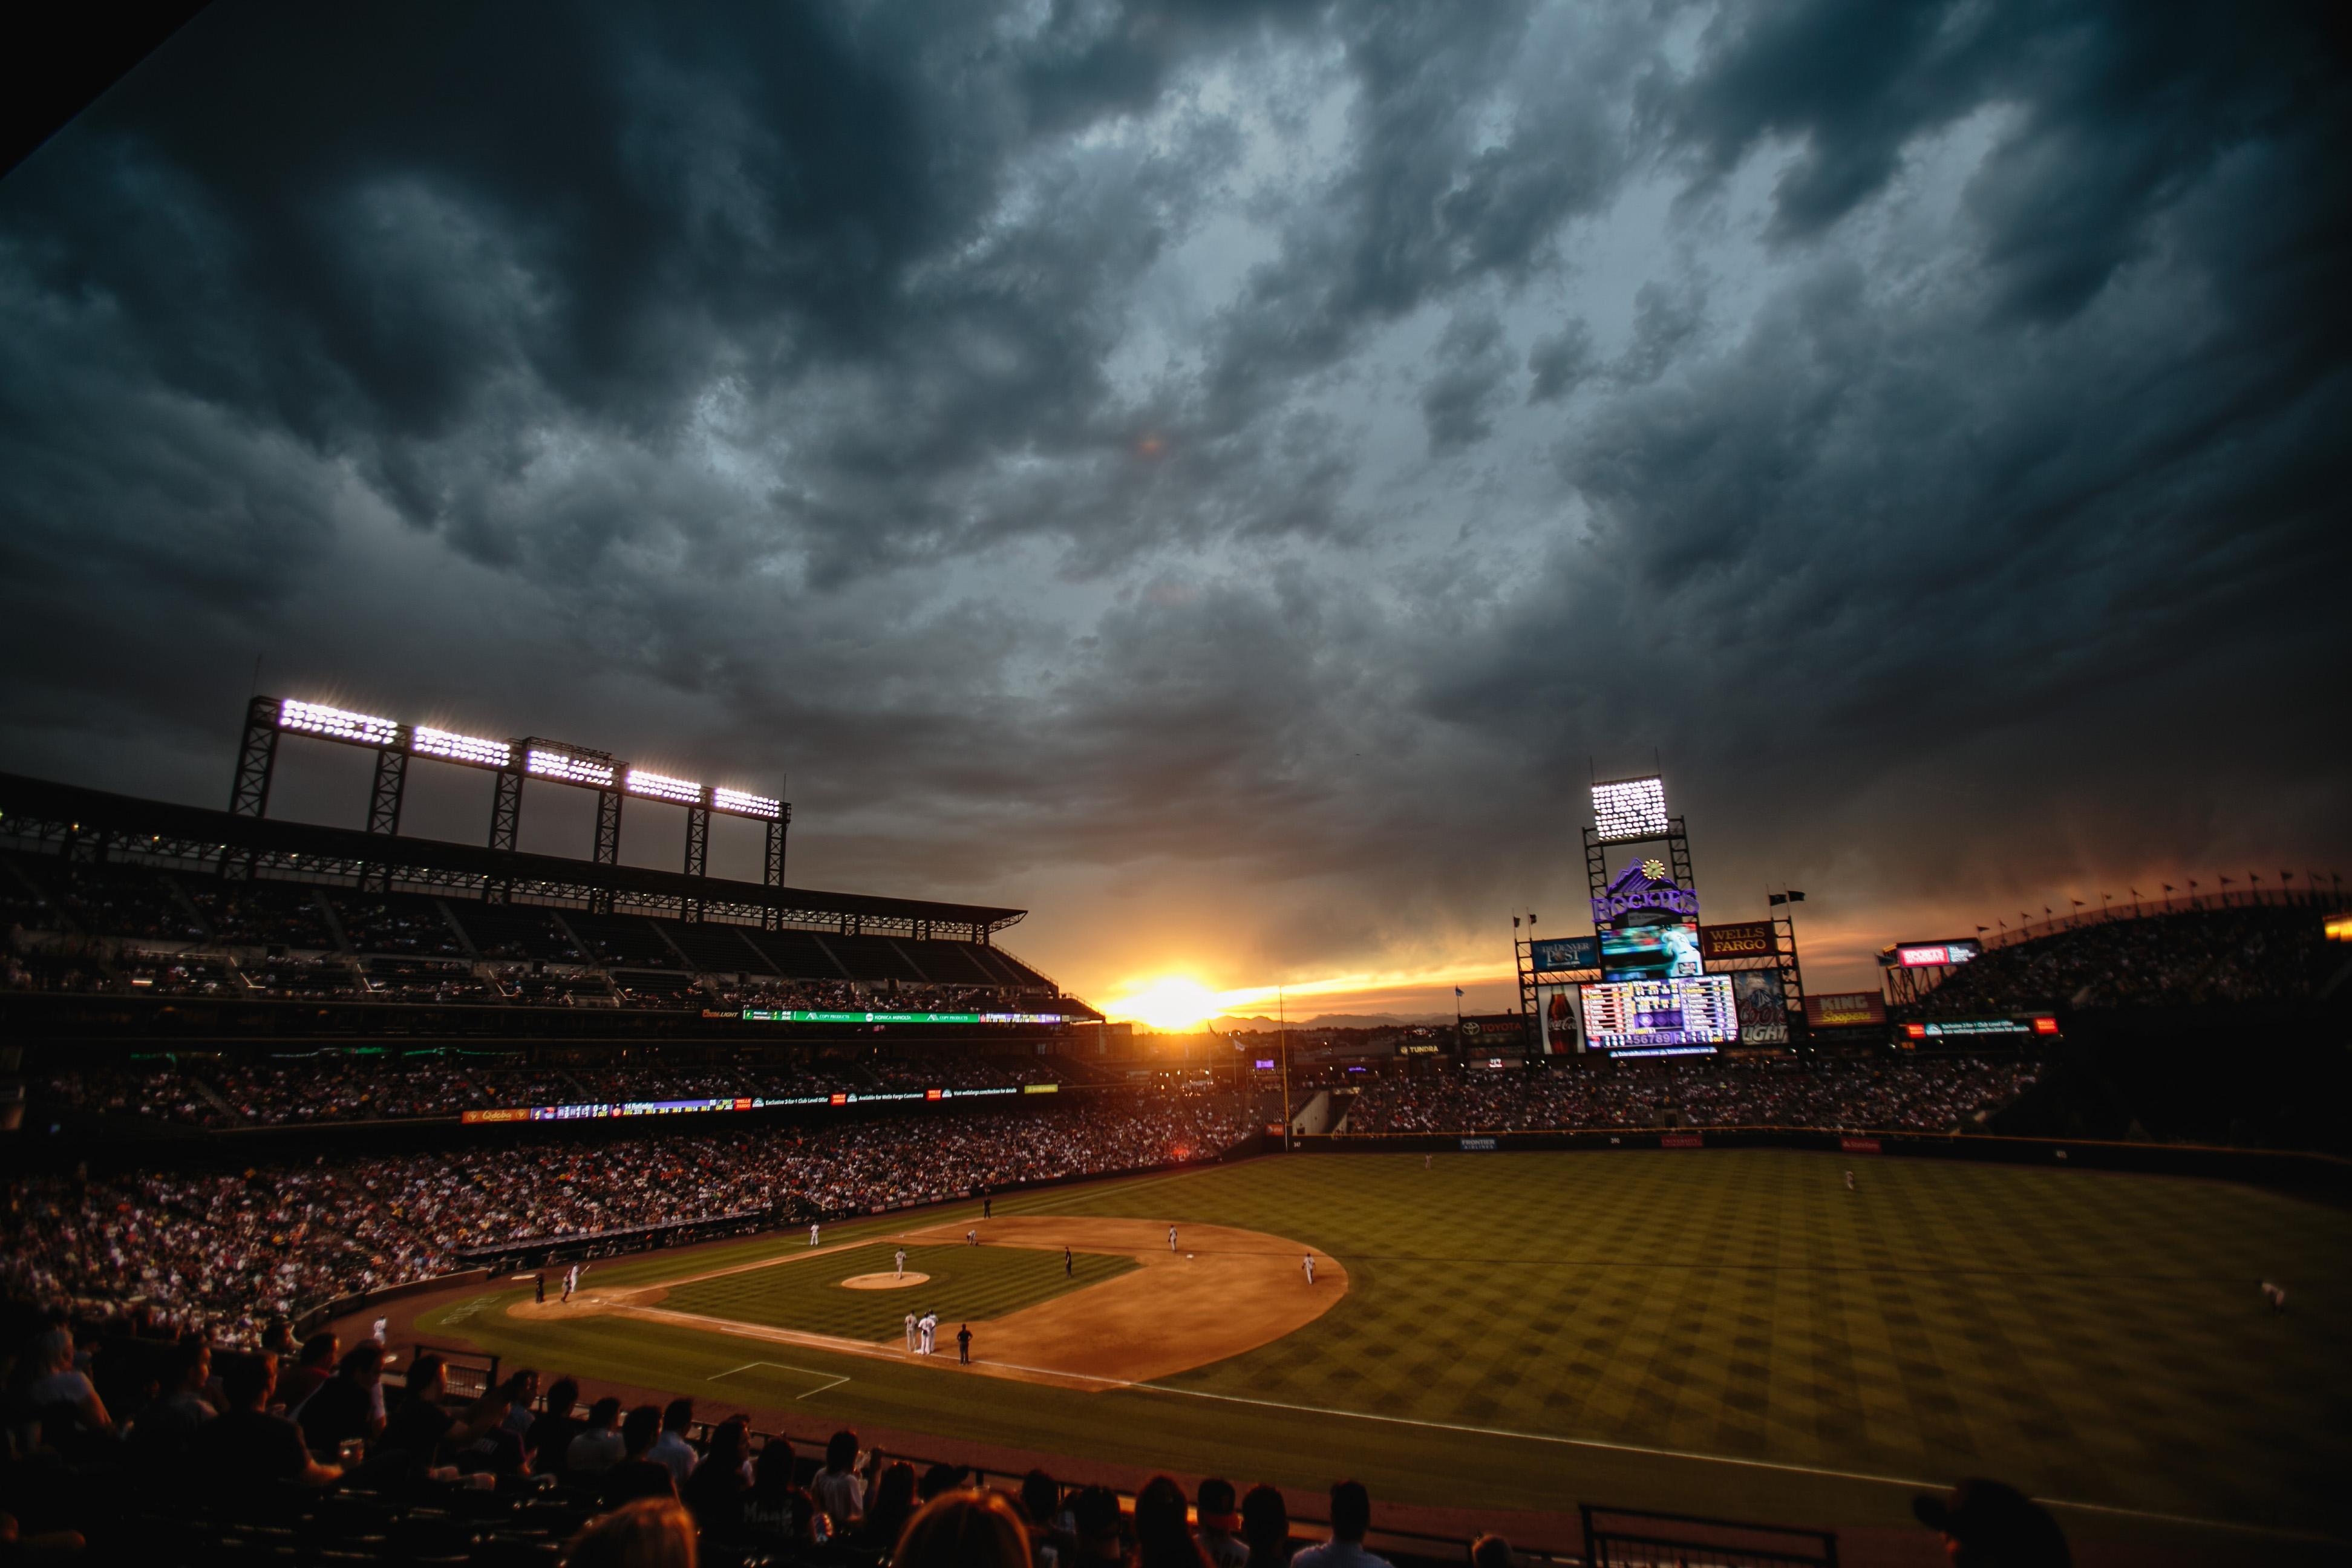 Baseball Field Wallpaper Hd Images amp Pictures   Becuo 3888x2592